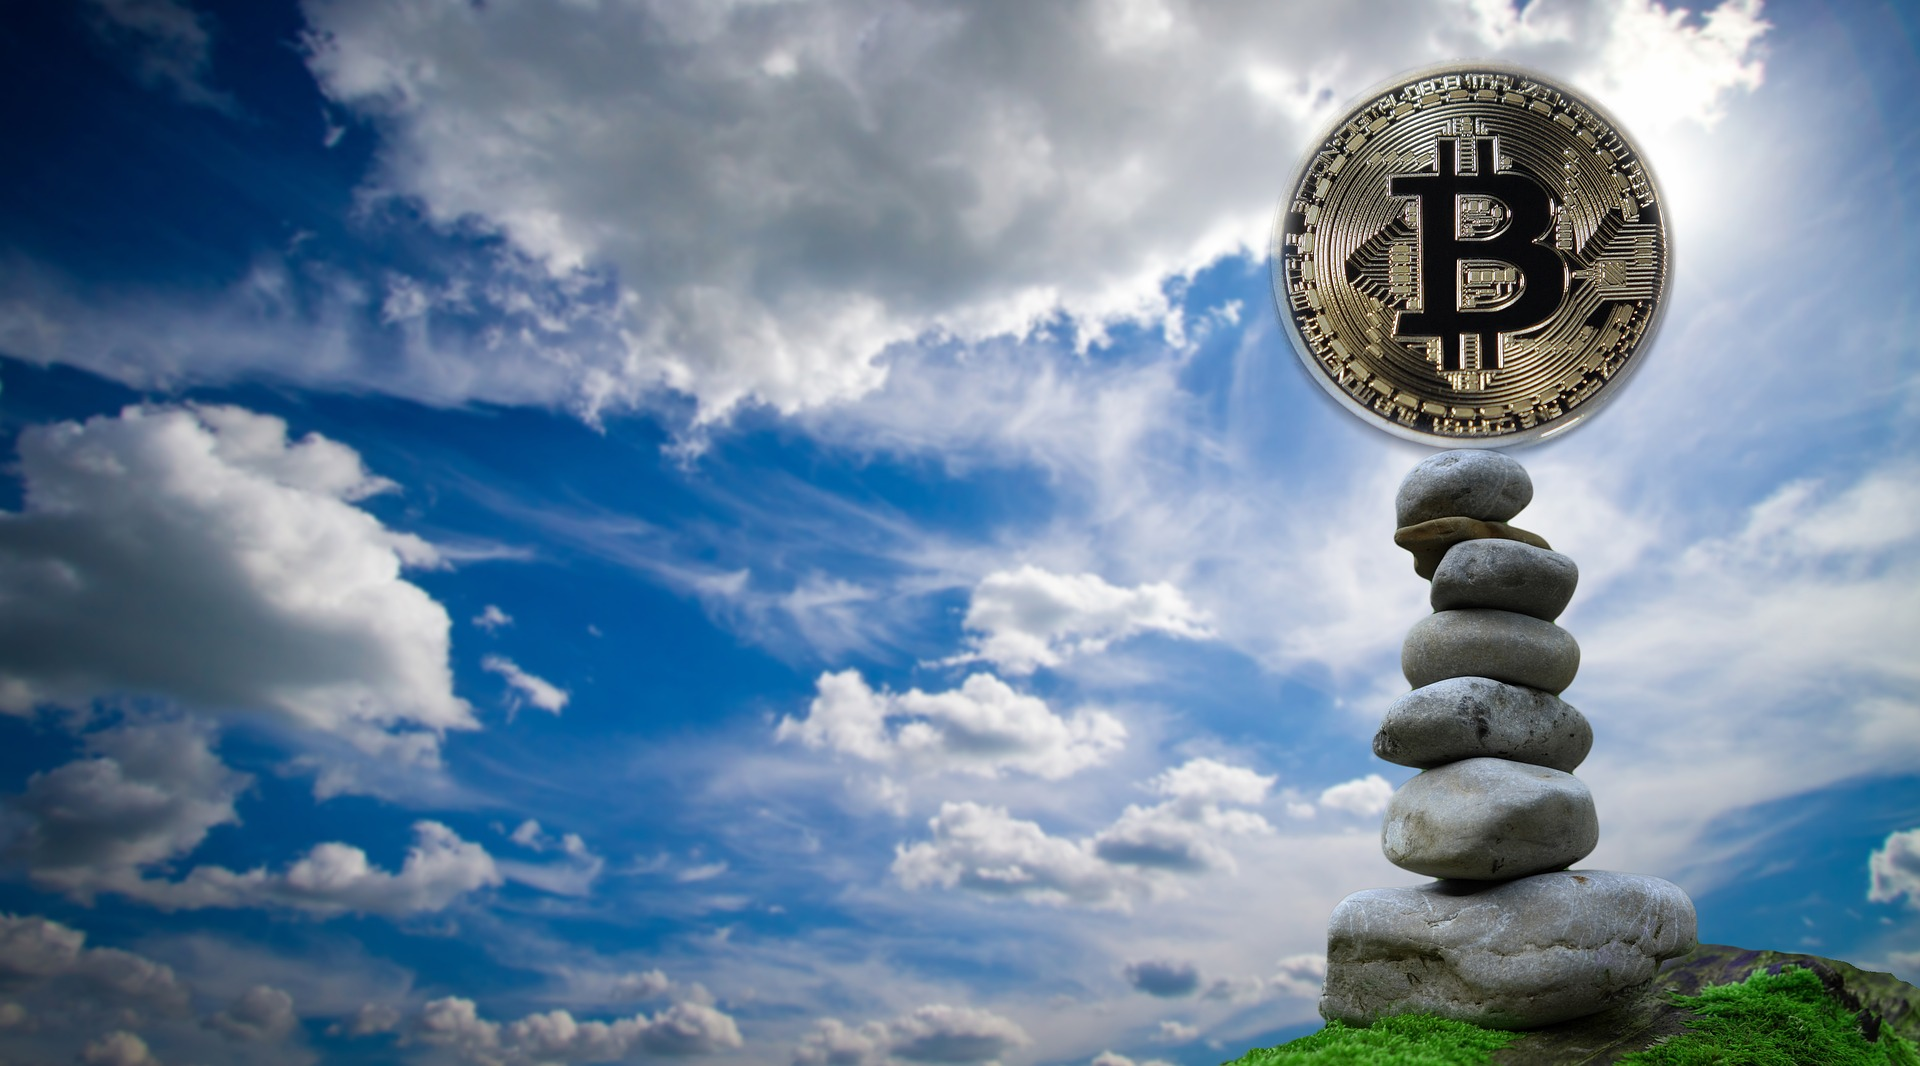 Bitcoin is Facing Resistance in Overcoming $50k Price Tag